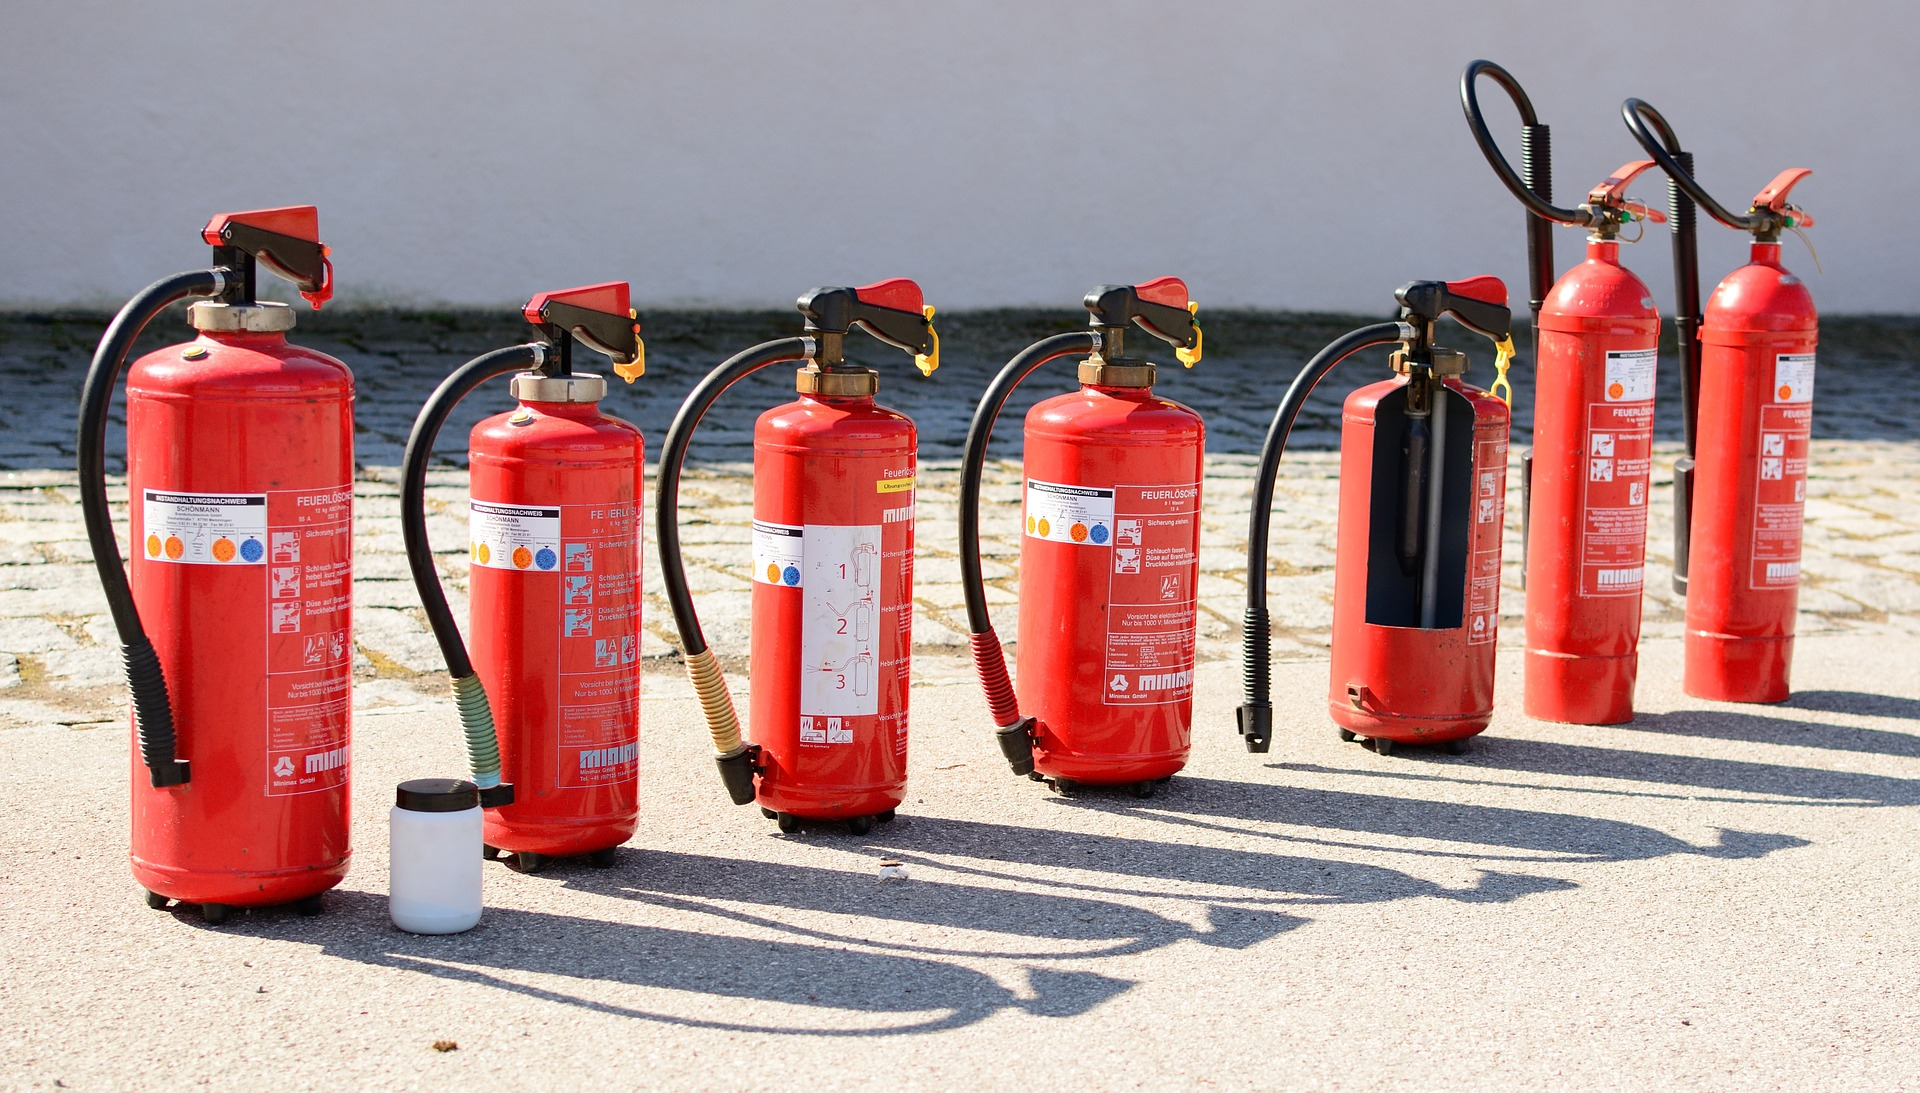 Why is workplace fire safety important?